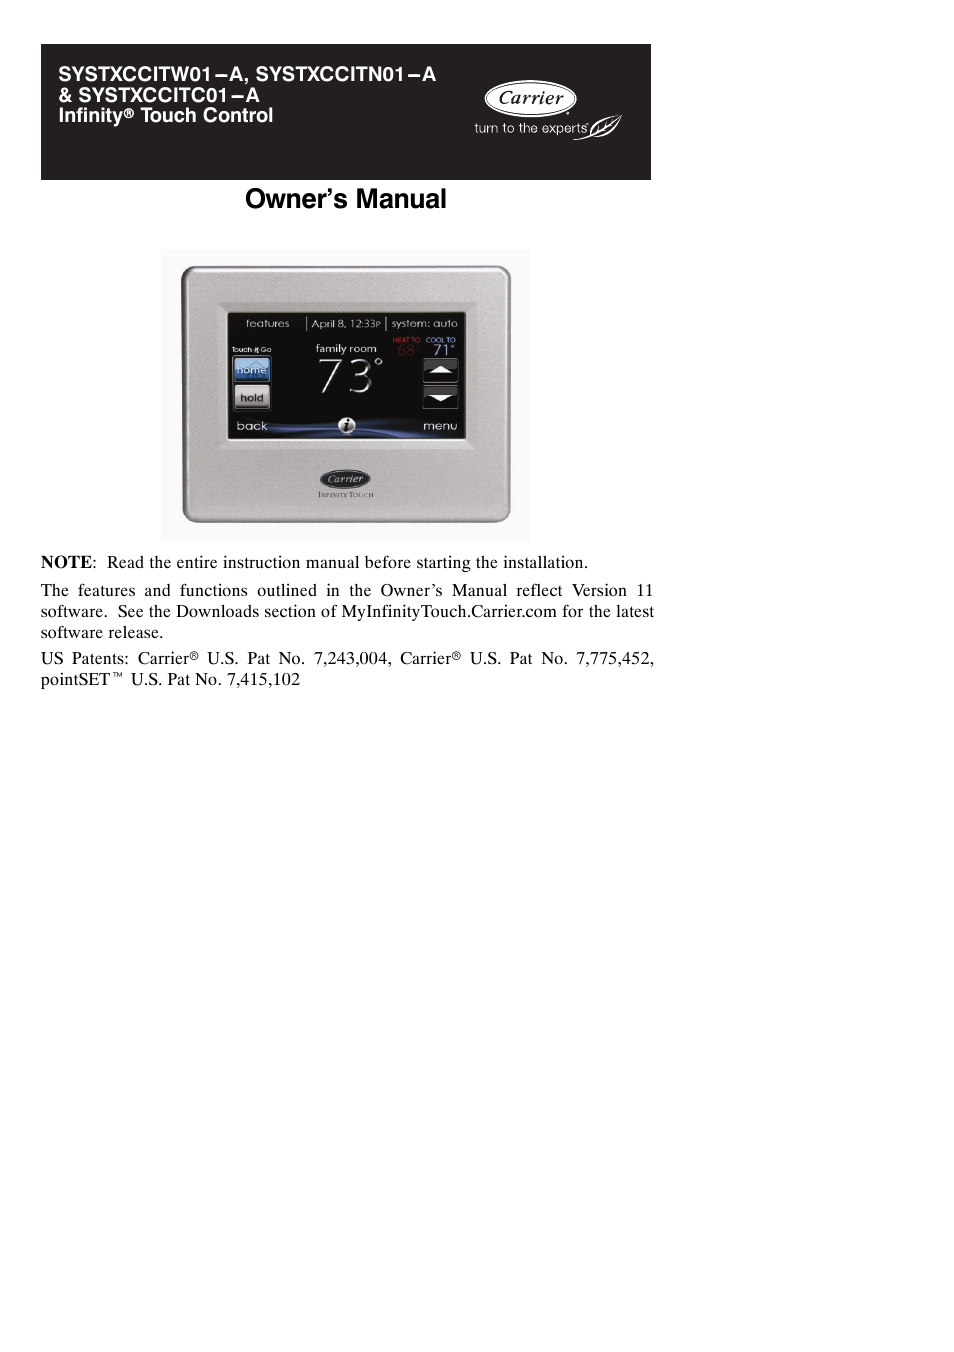 Carrier Infinity Systxccitc01 A User Manual 68 Pages Also For Systxccitn01 Systxccitw01 Thermostat